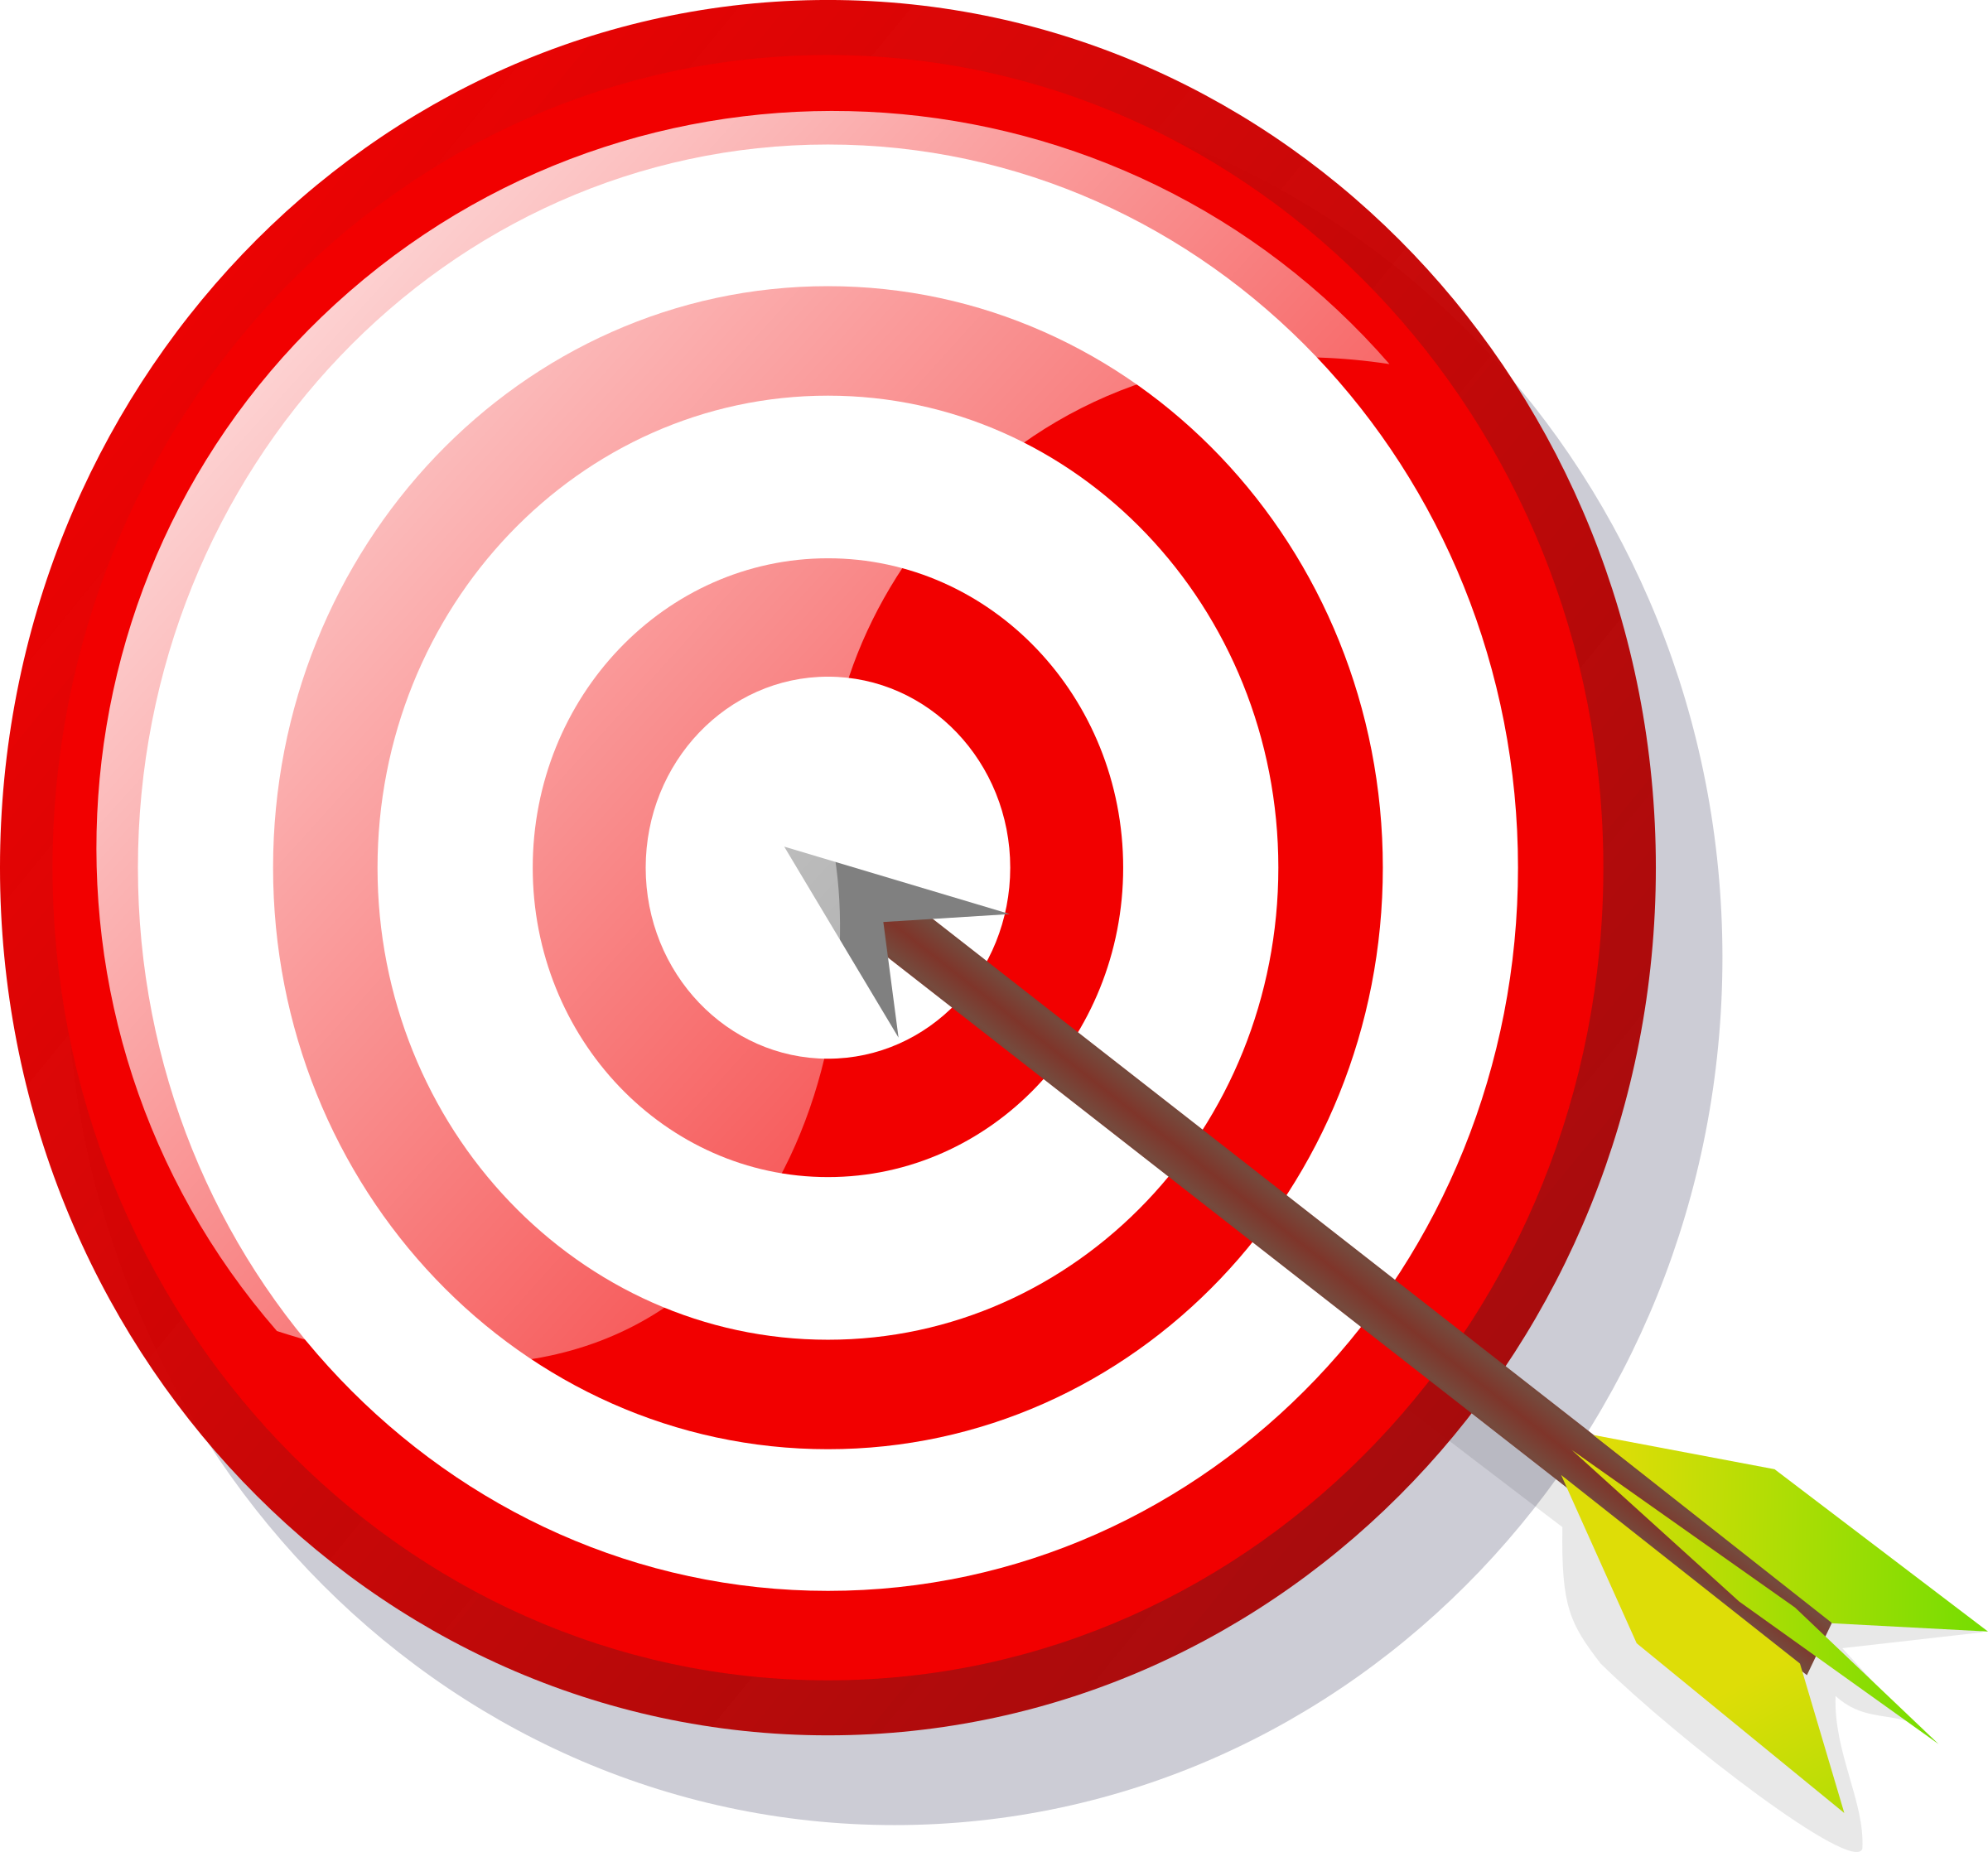 Colouful clipart target #3